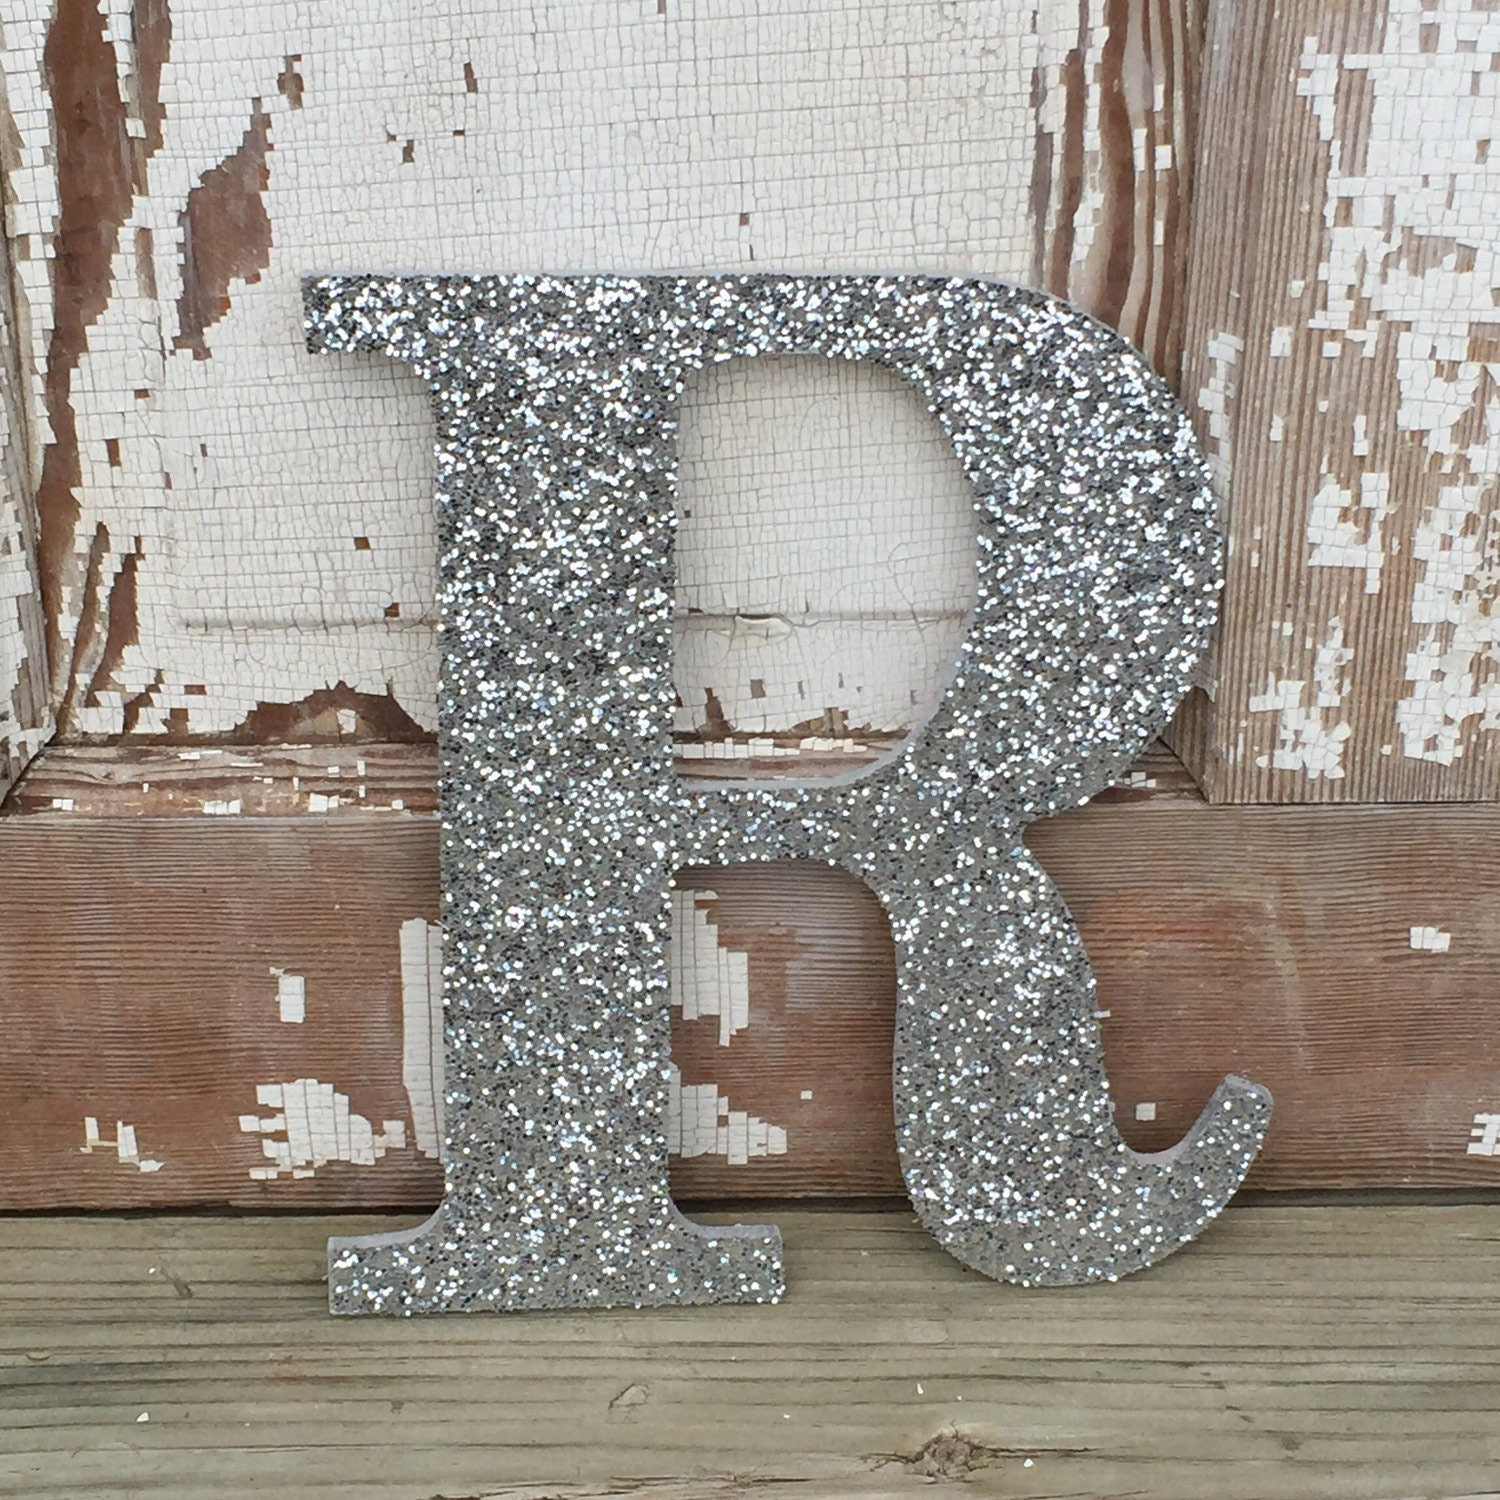 9 Decorative Silver Glitter Wall Letters Girls Bedroom | Etsy